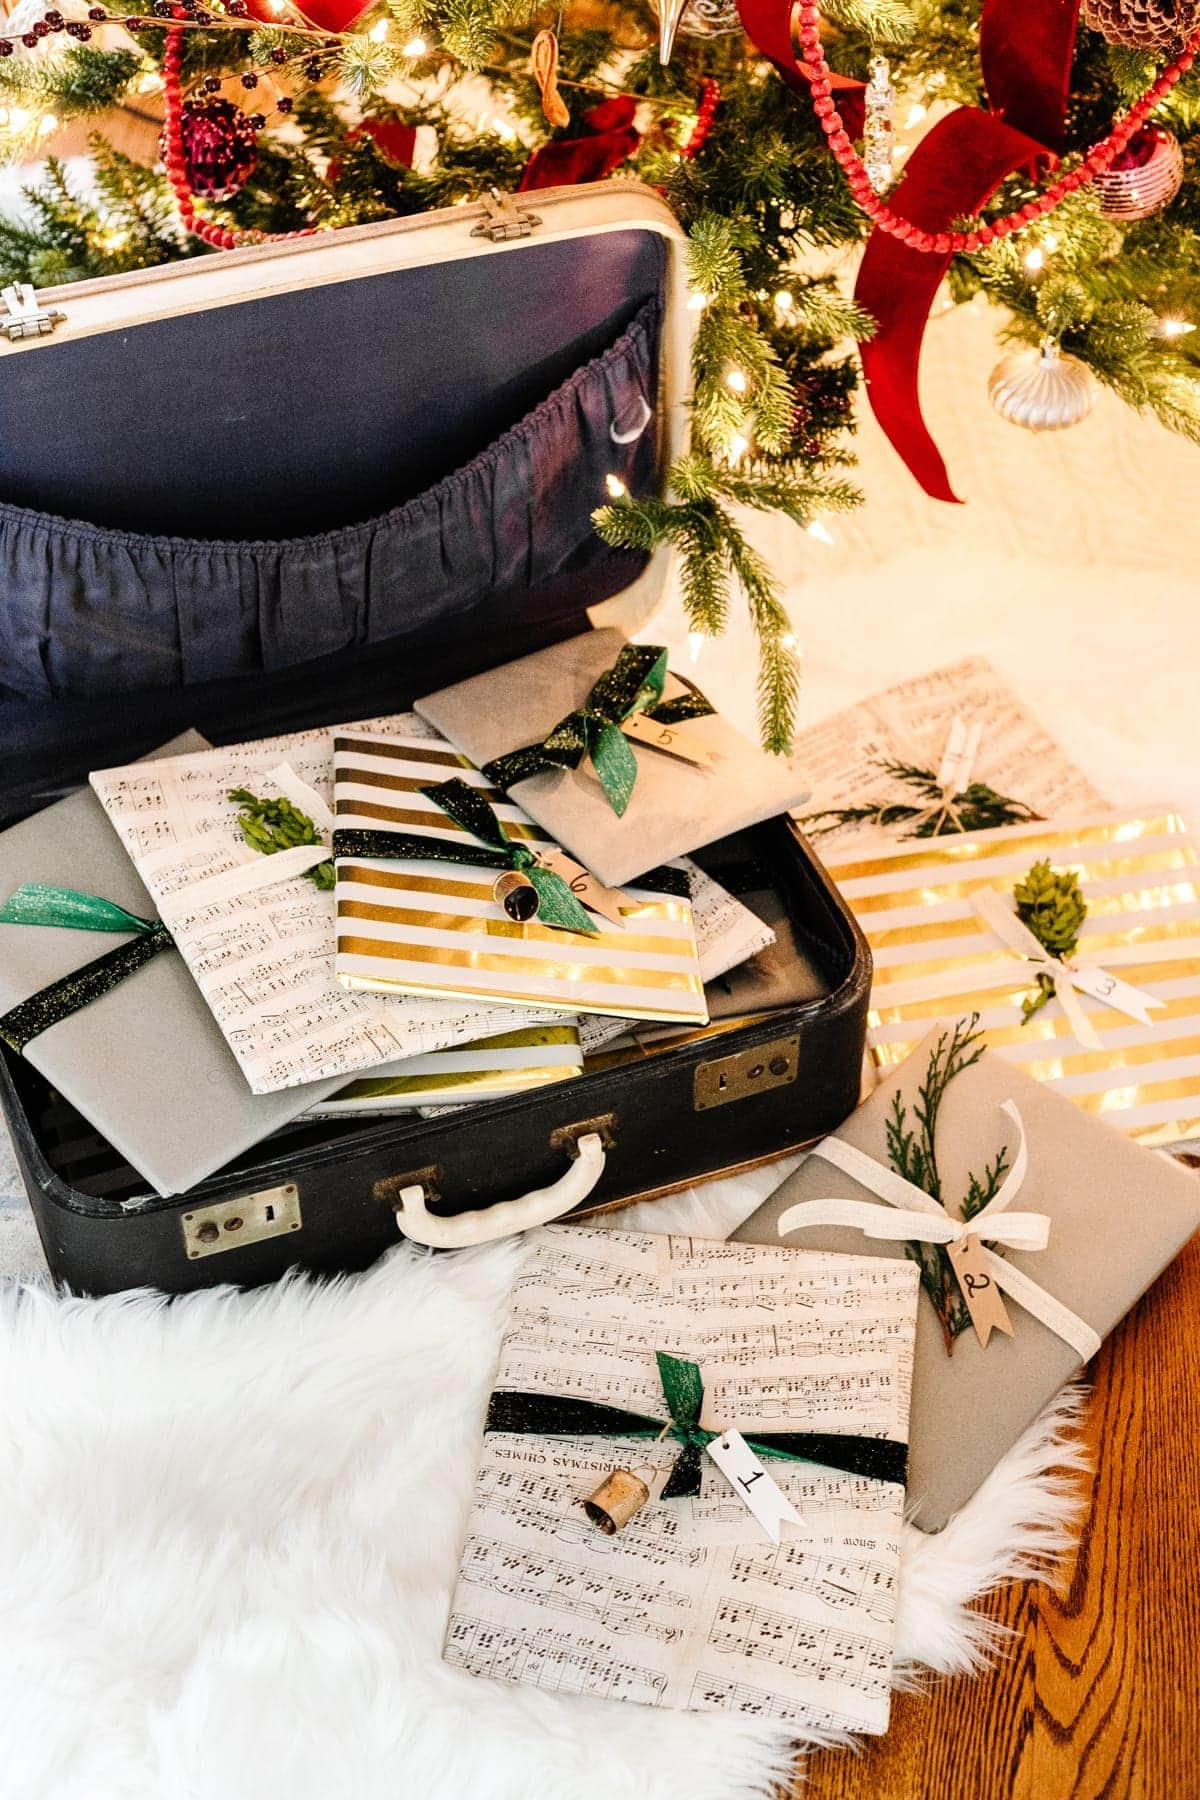 Christmas Countdown Advent Calendar - Wrap Christmas books individually with a number and keep in an old suitcase to unwrap one per night before bed.